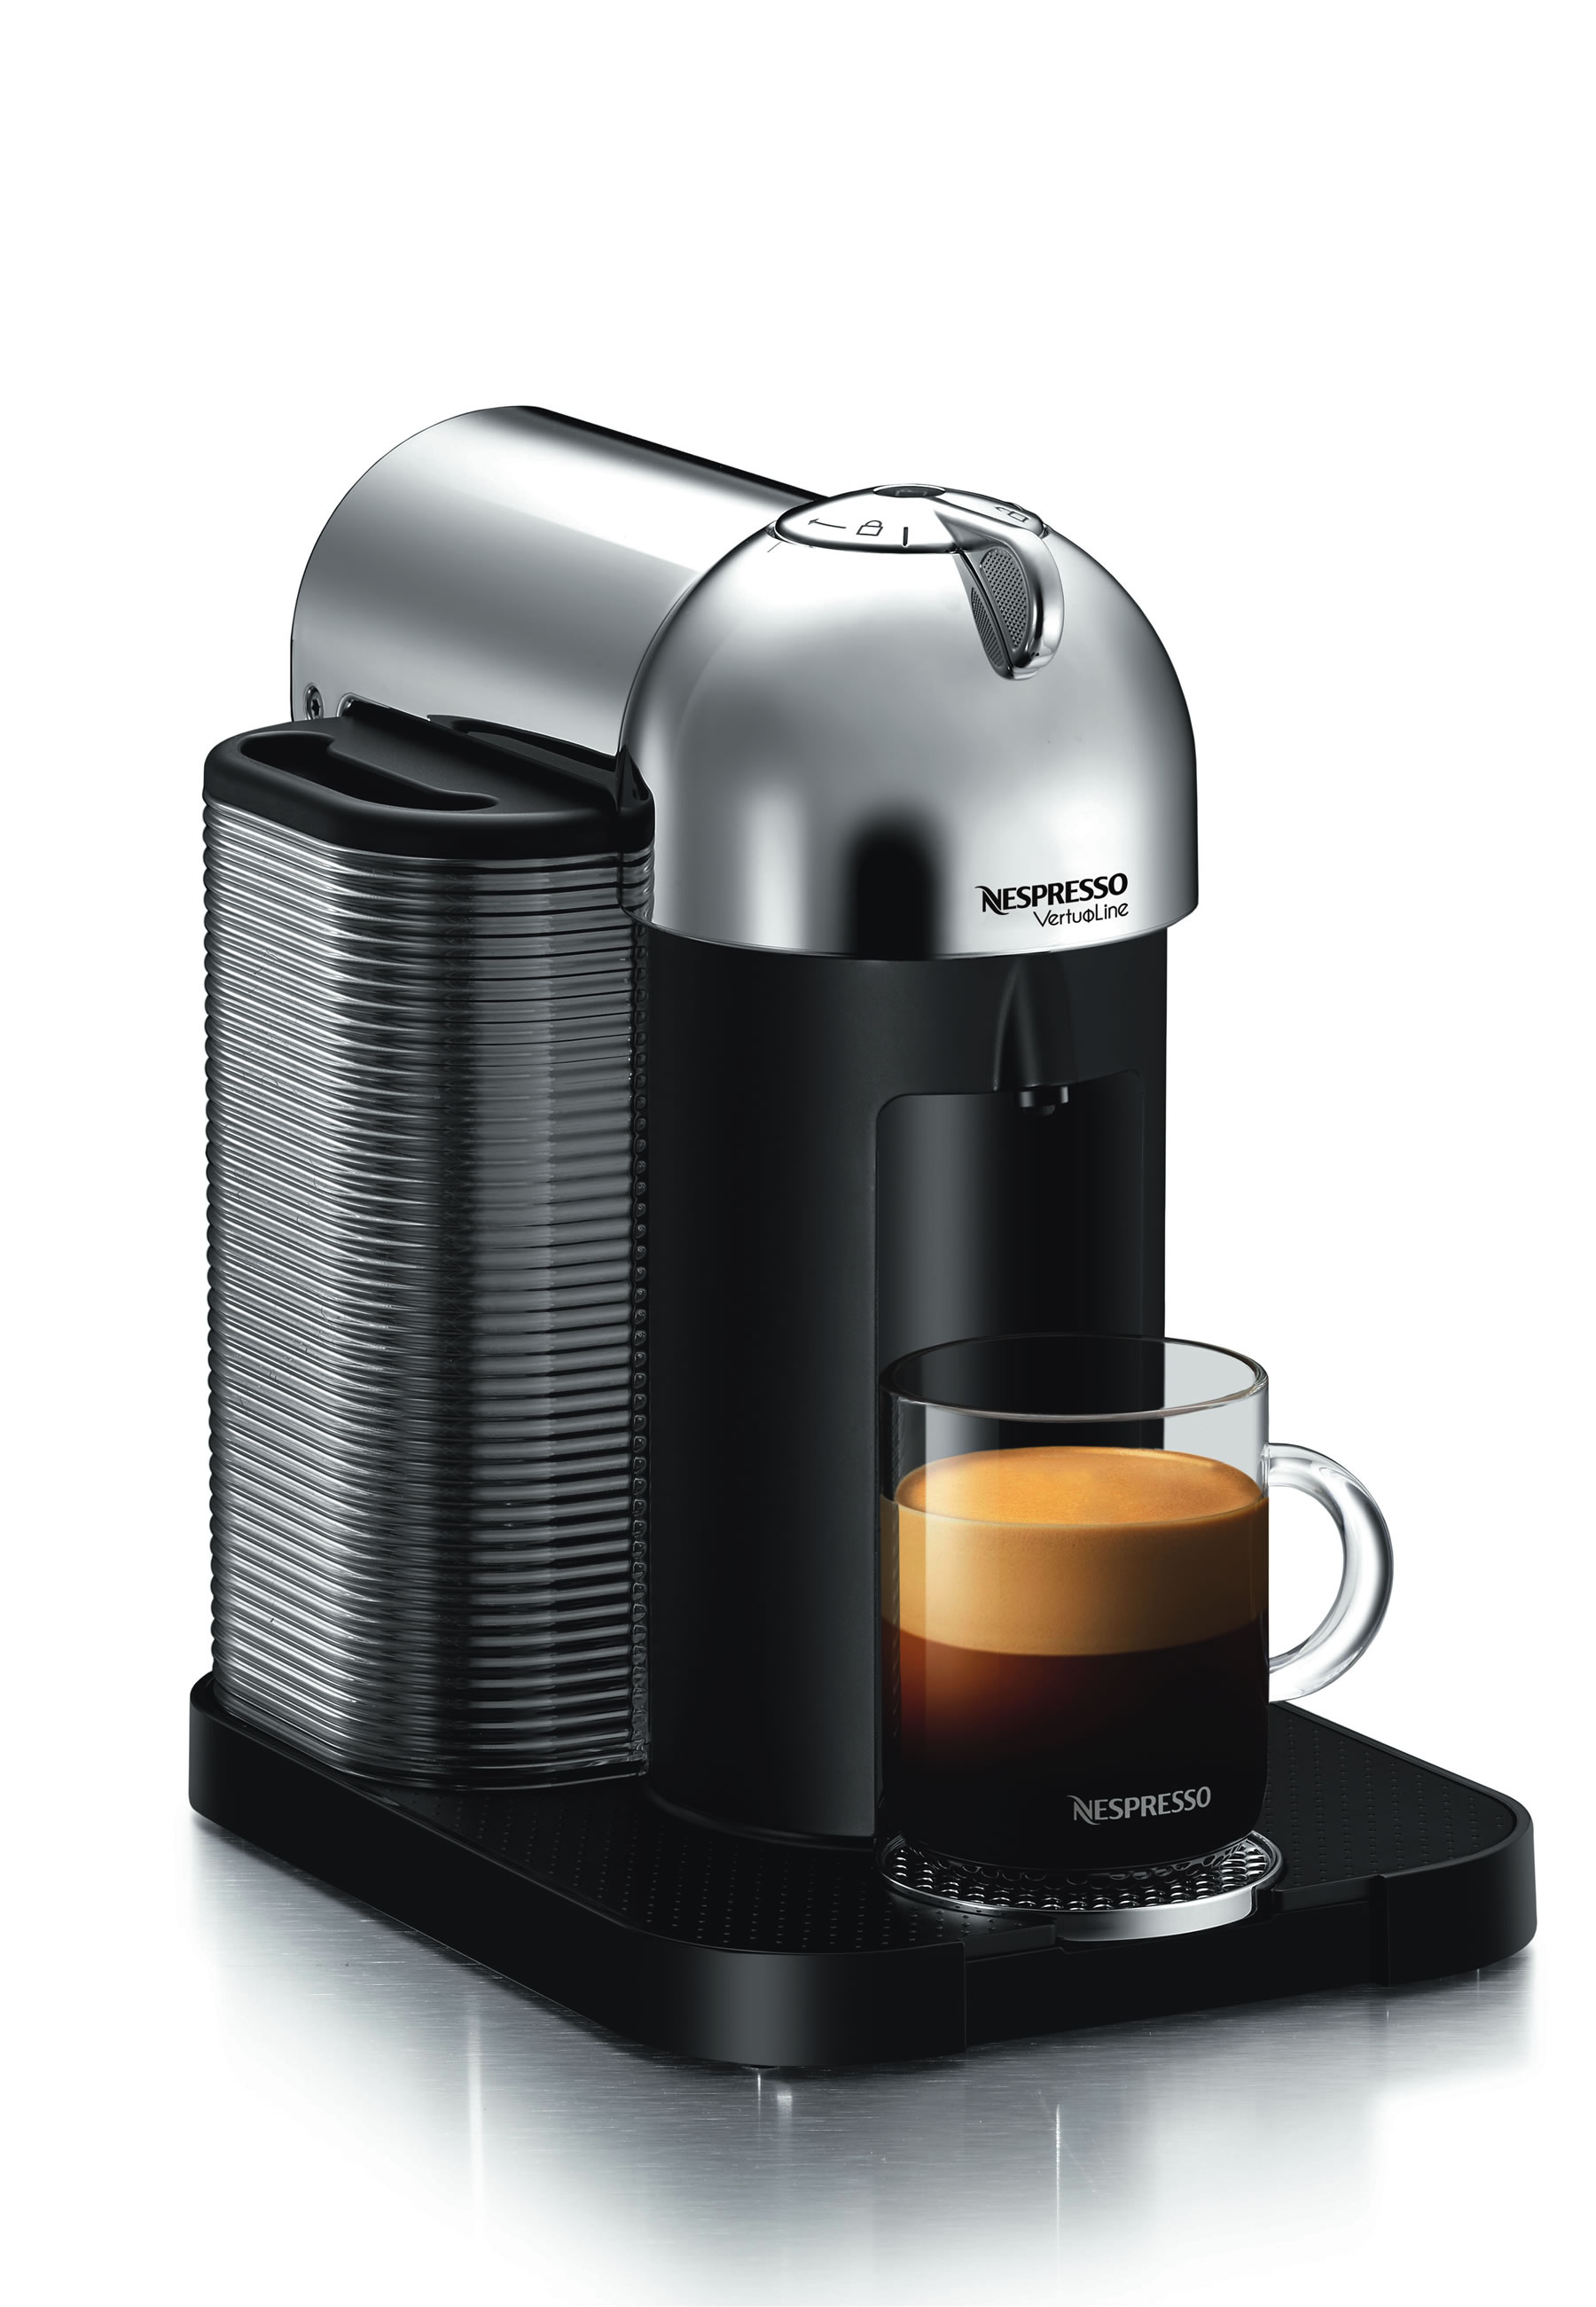 Order Gourmesso Coffee's Alternative to Nespresso Capsules & Keurig K-Cup®* Pods. Discover and save money by enjoying high quality coffee with your Nespresso or Keurig®* machine.